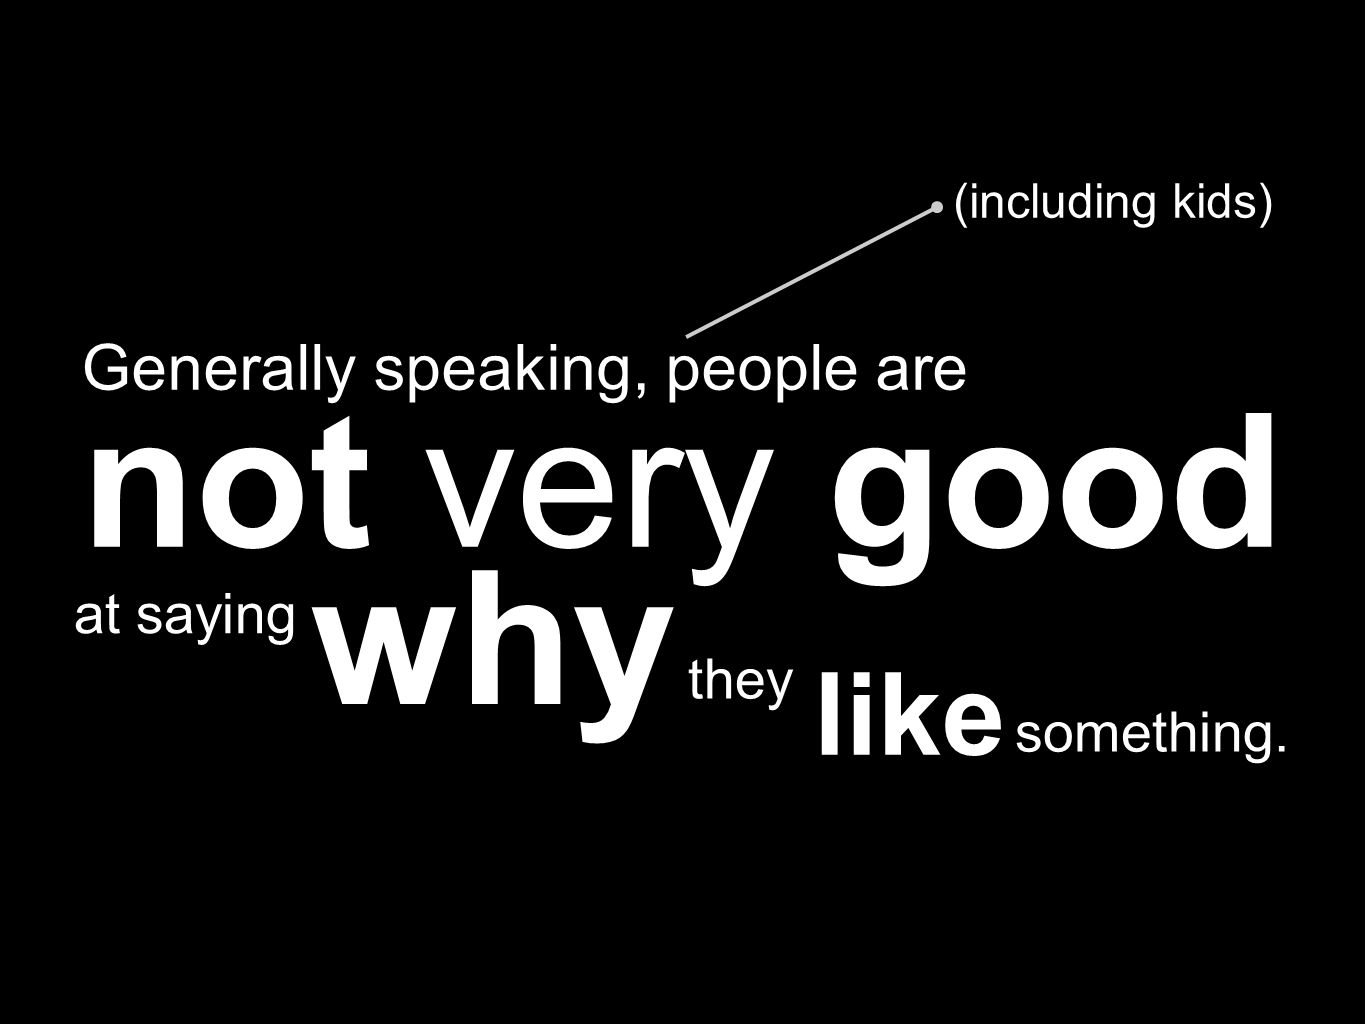 why not very good Generally speaking, people are (including kids) at saying they like something.